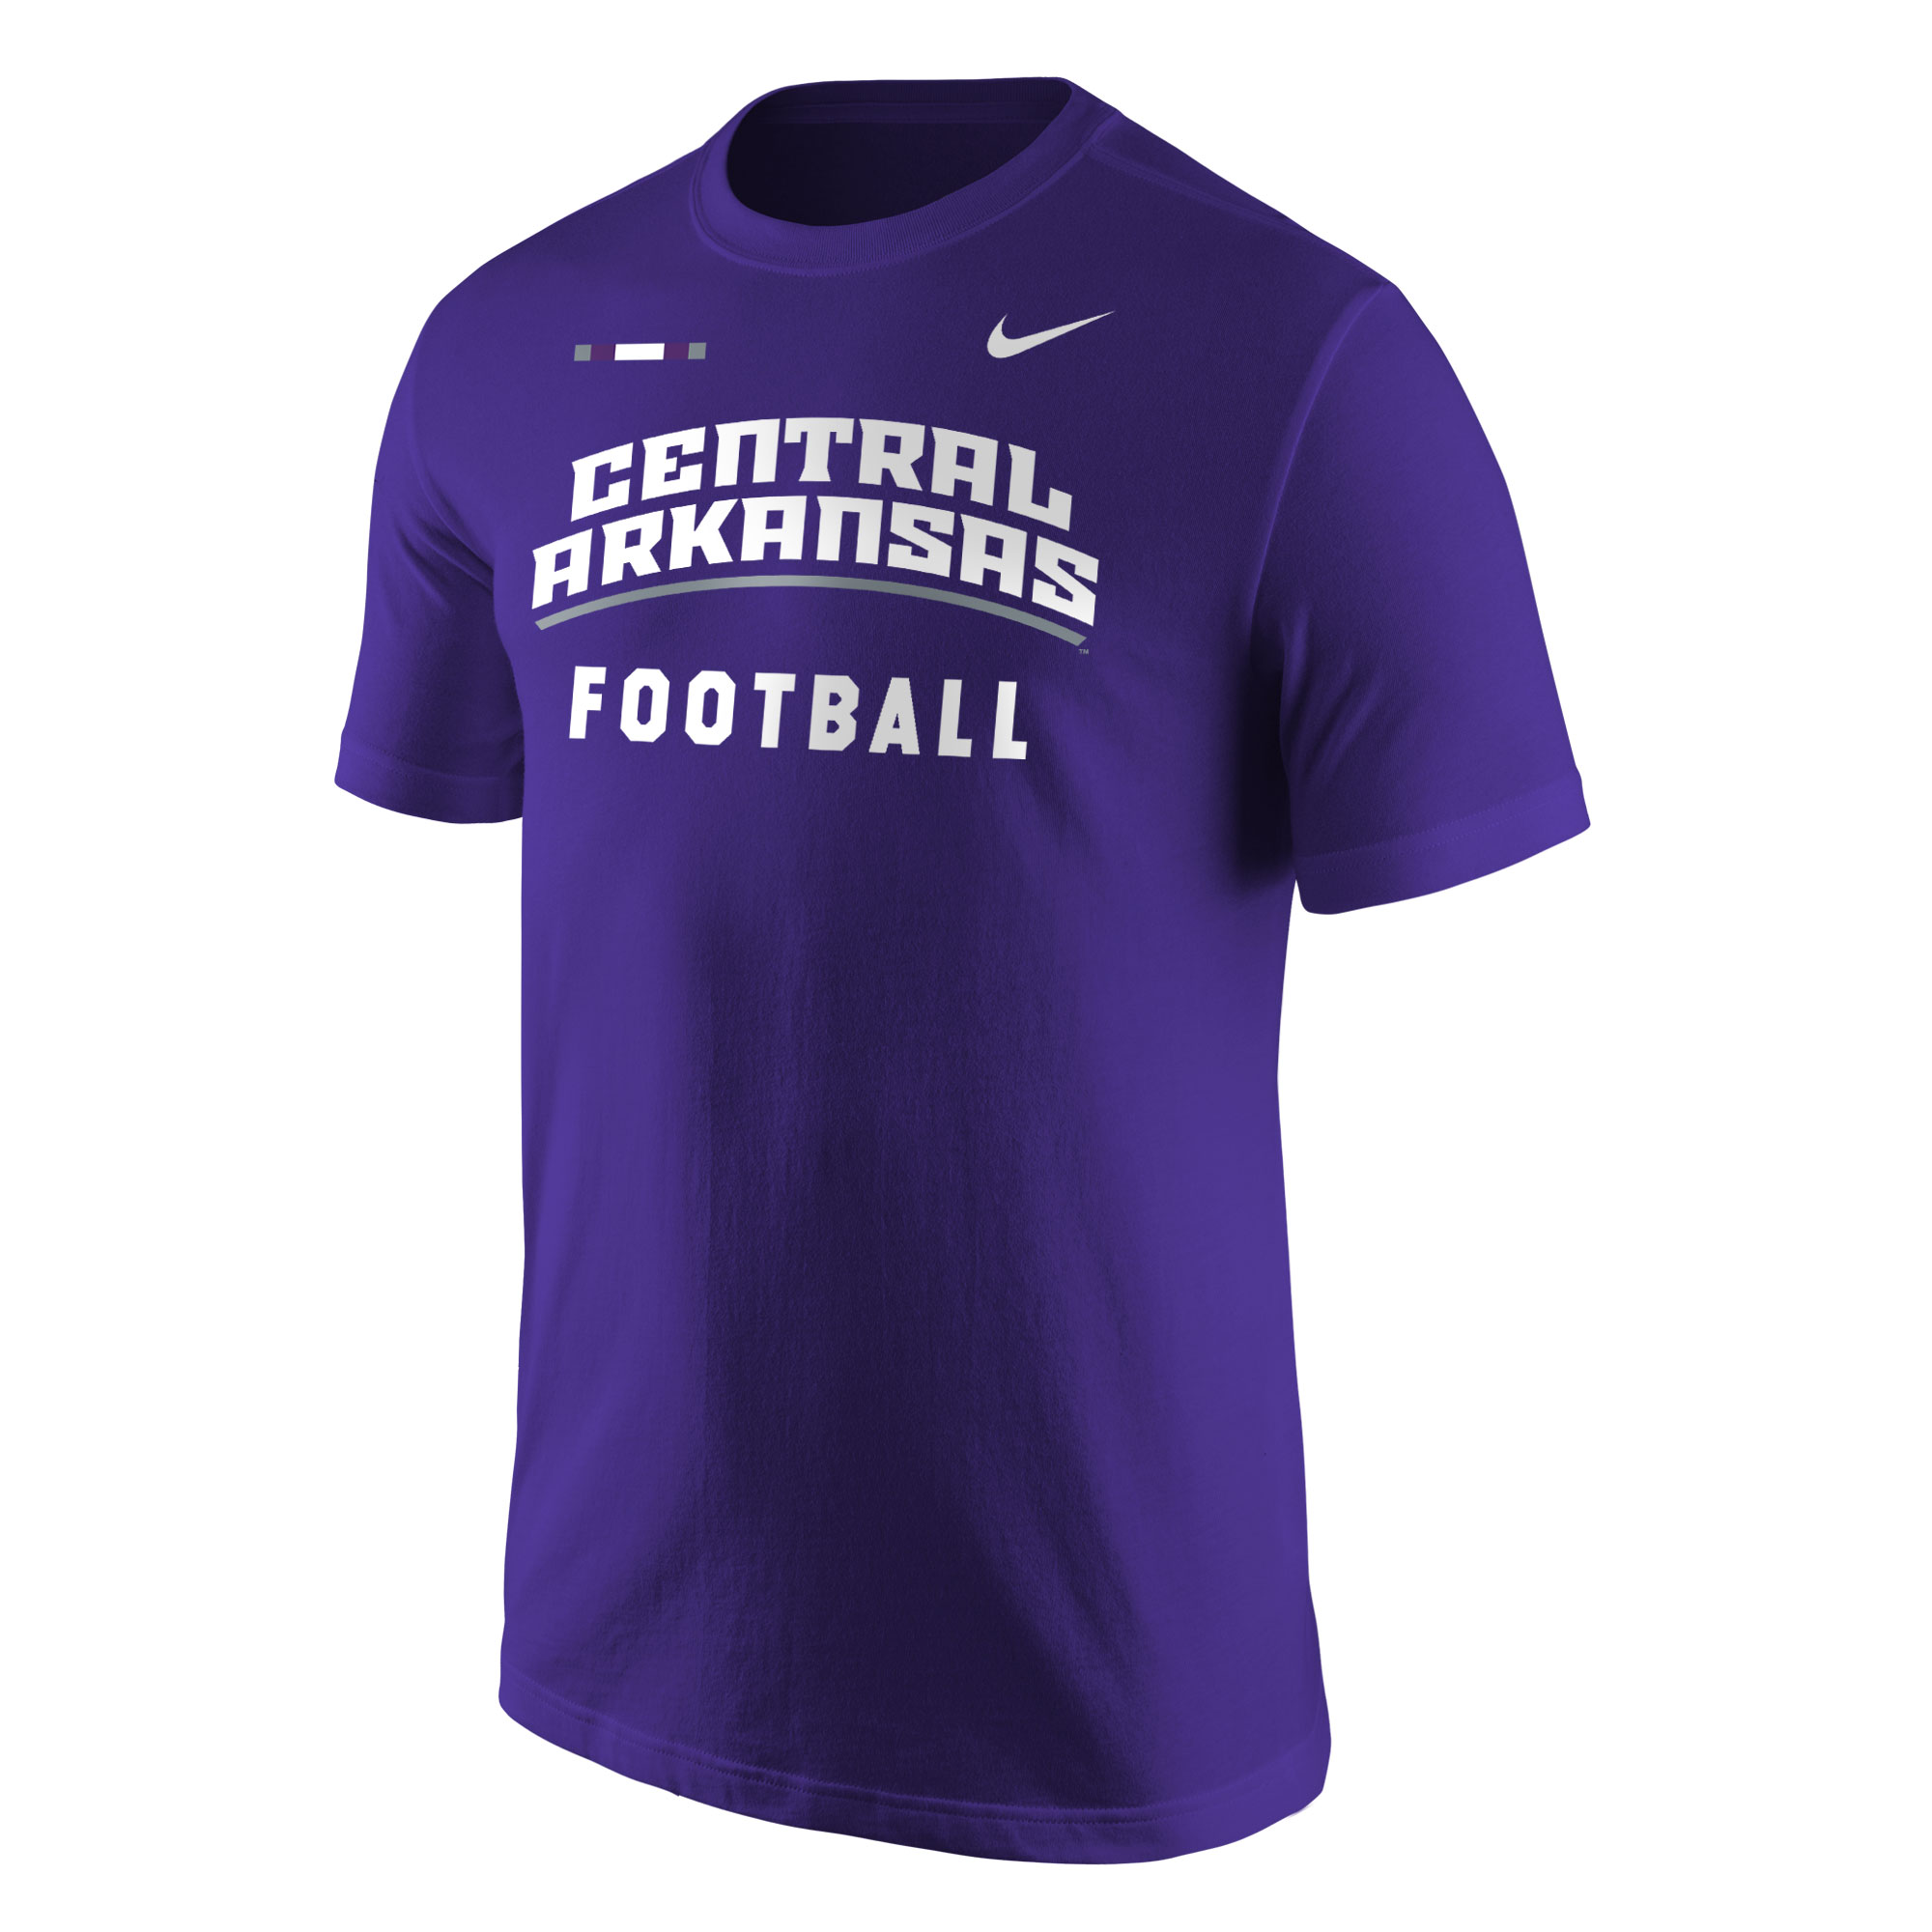 Central Arkansas Arch Football Tee